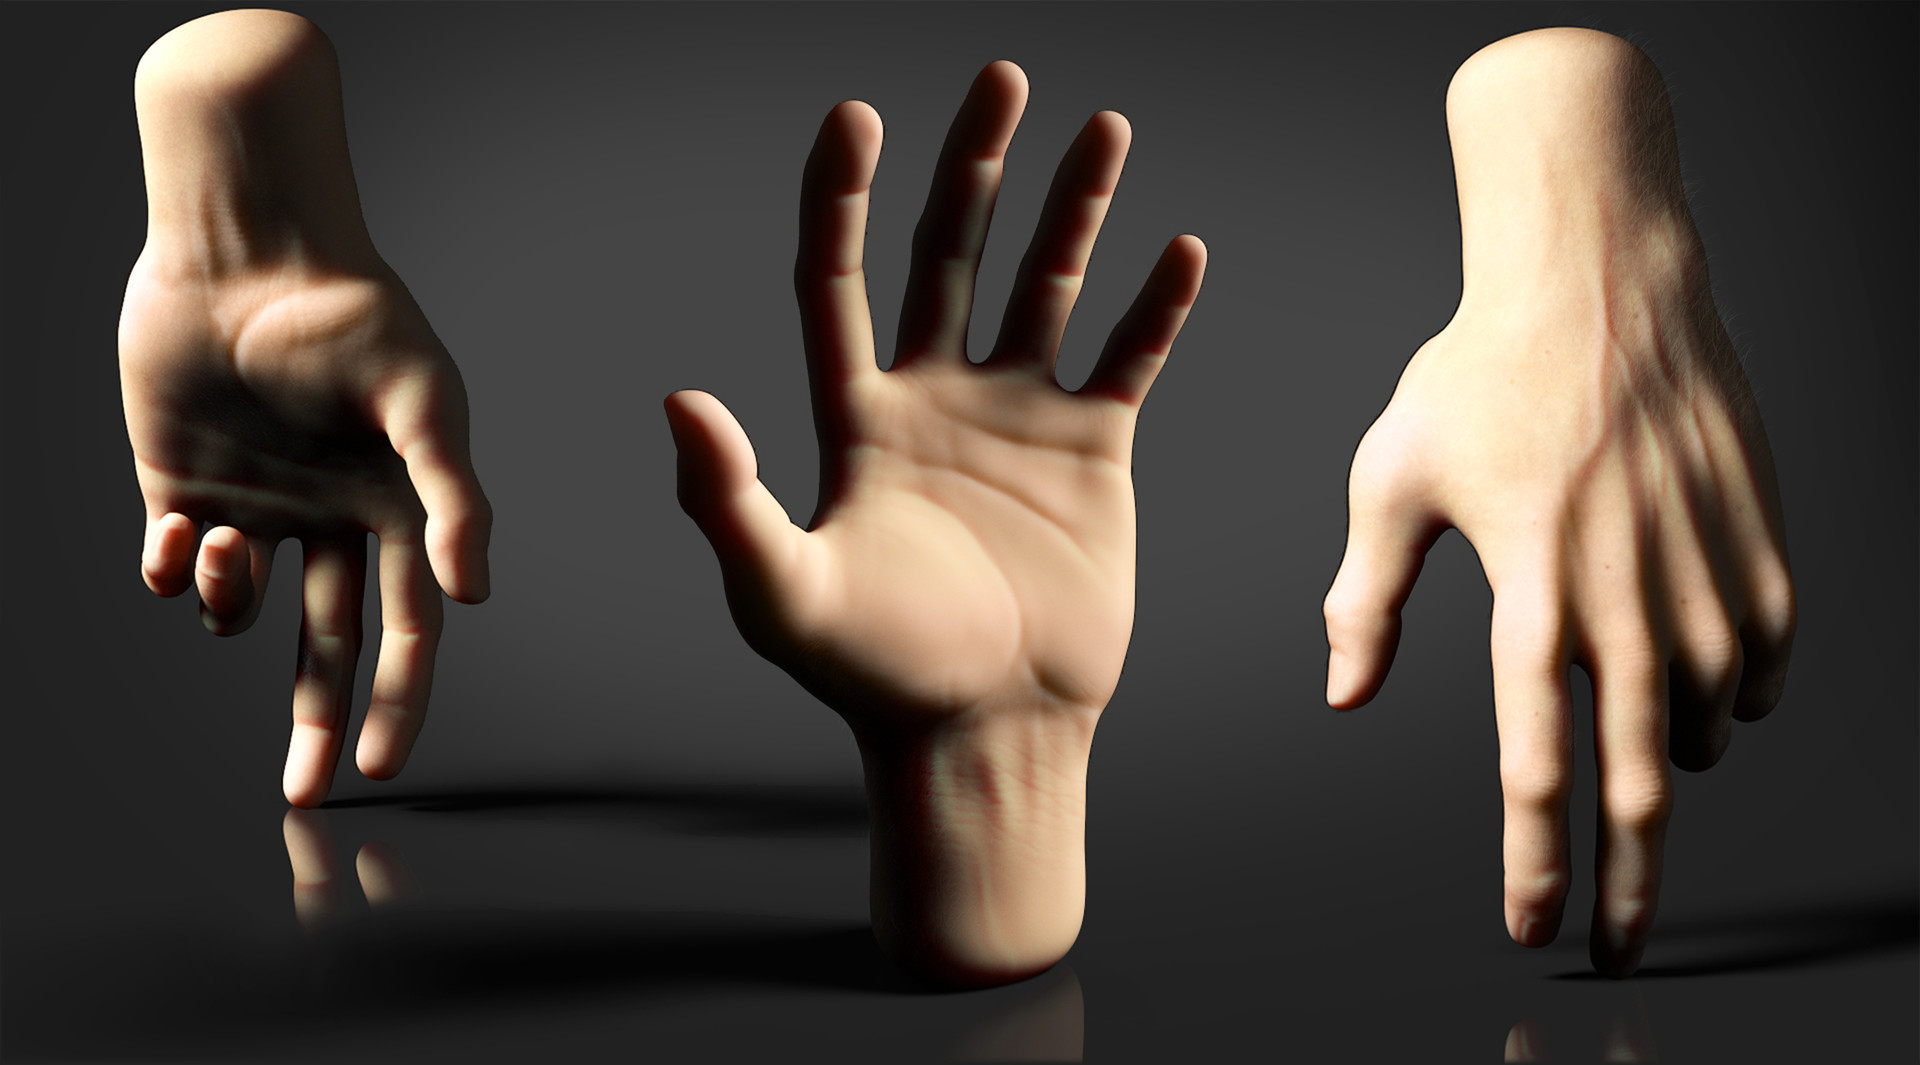 Wil hughes hand